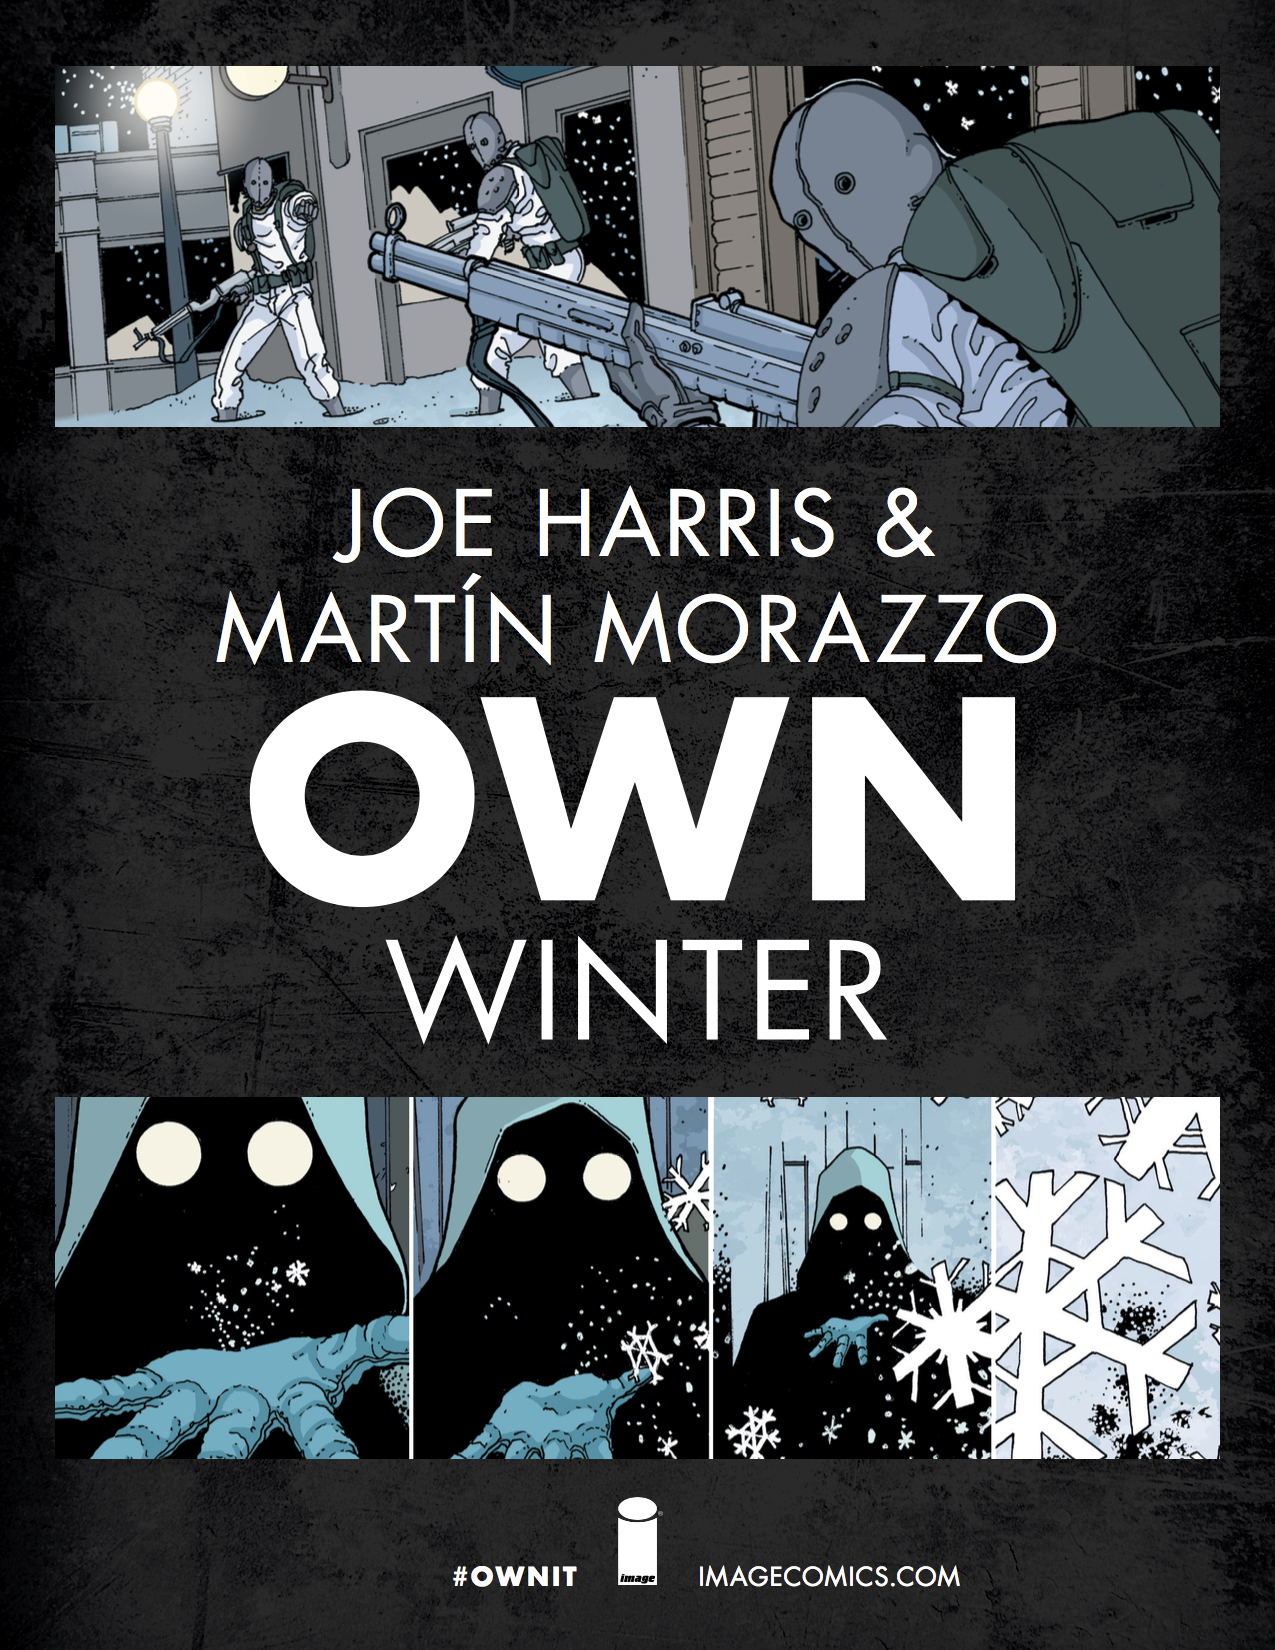 Joe Harris and Martin Morazzo Own Winter